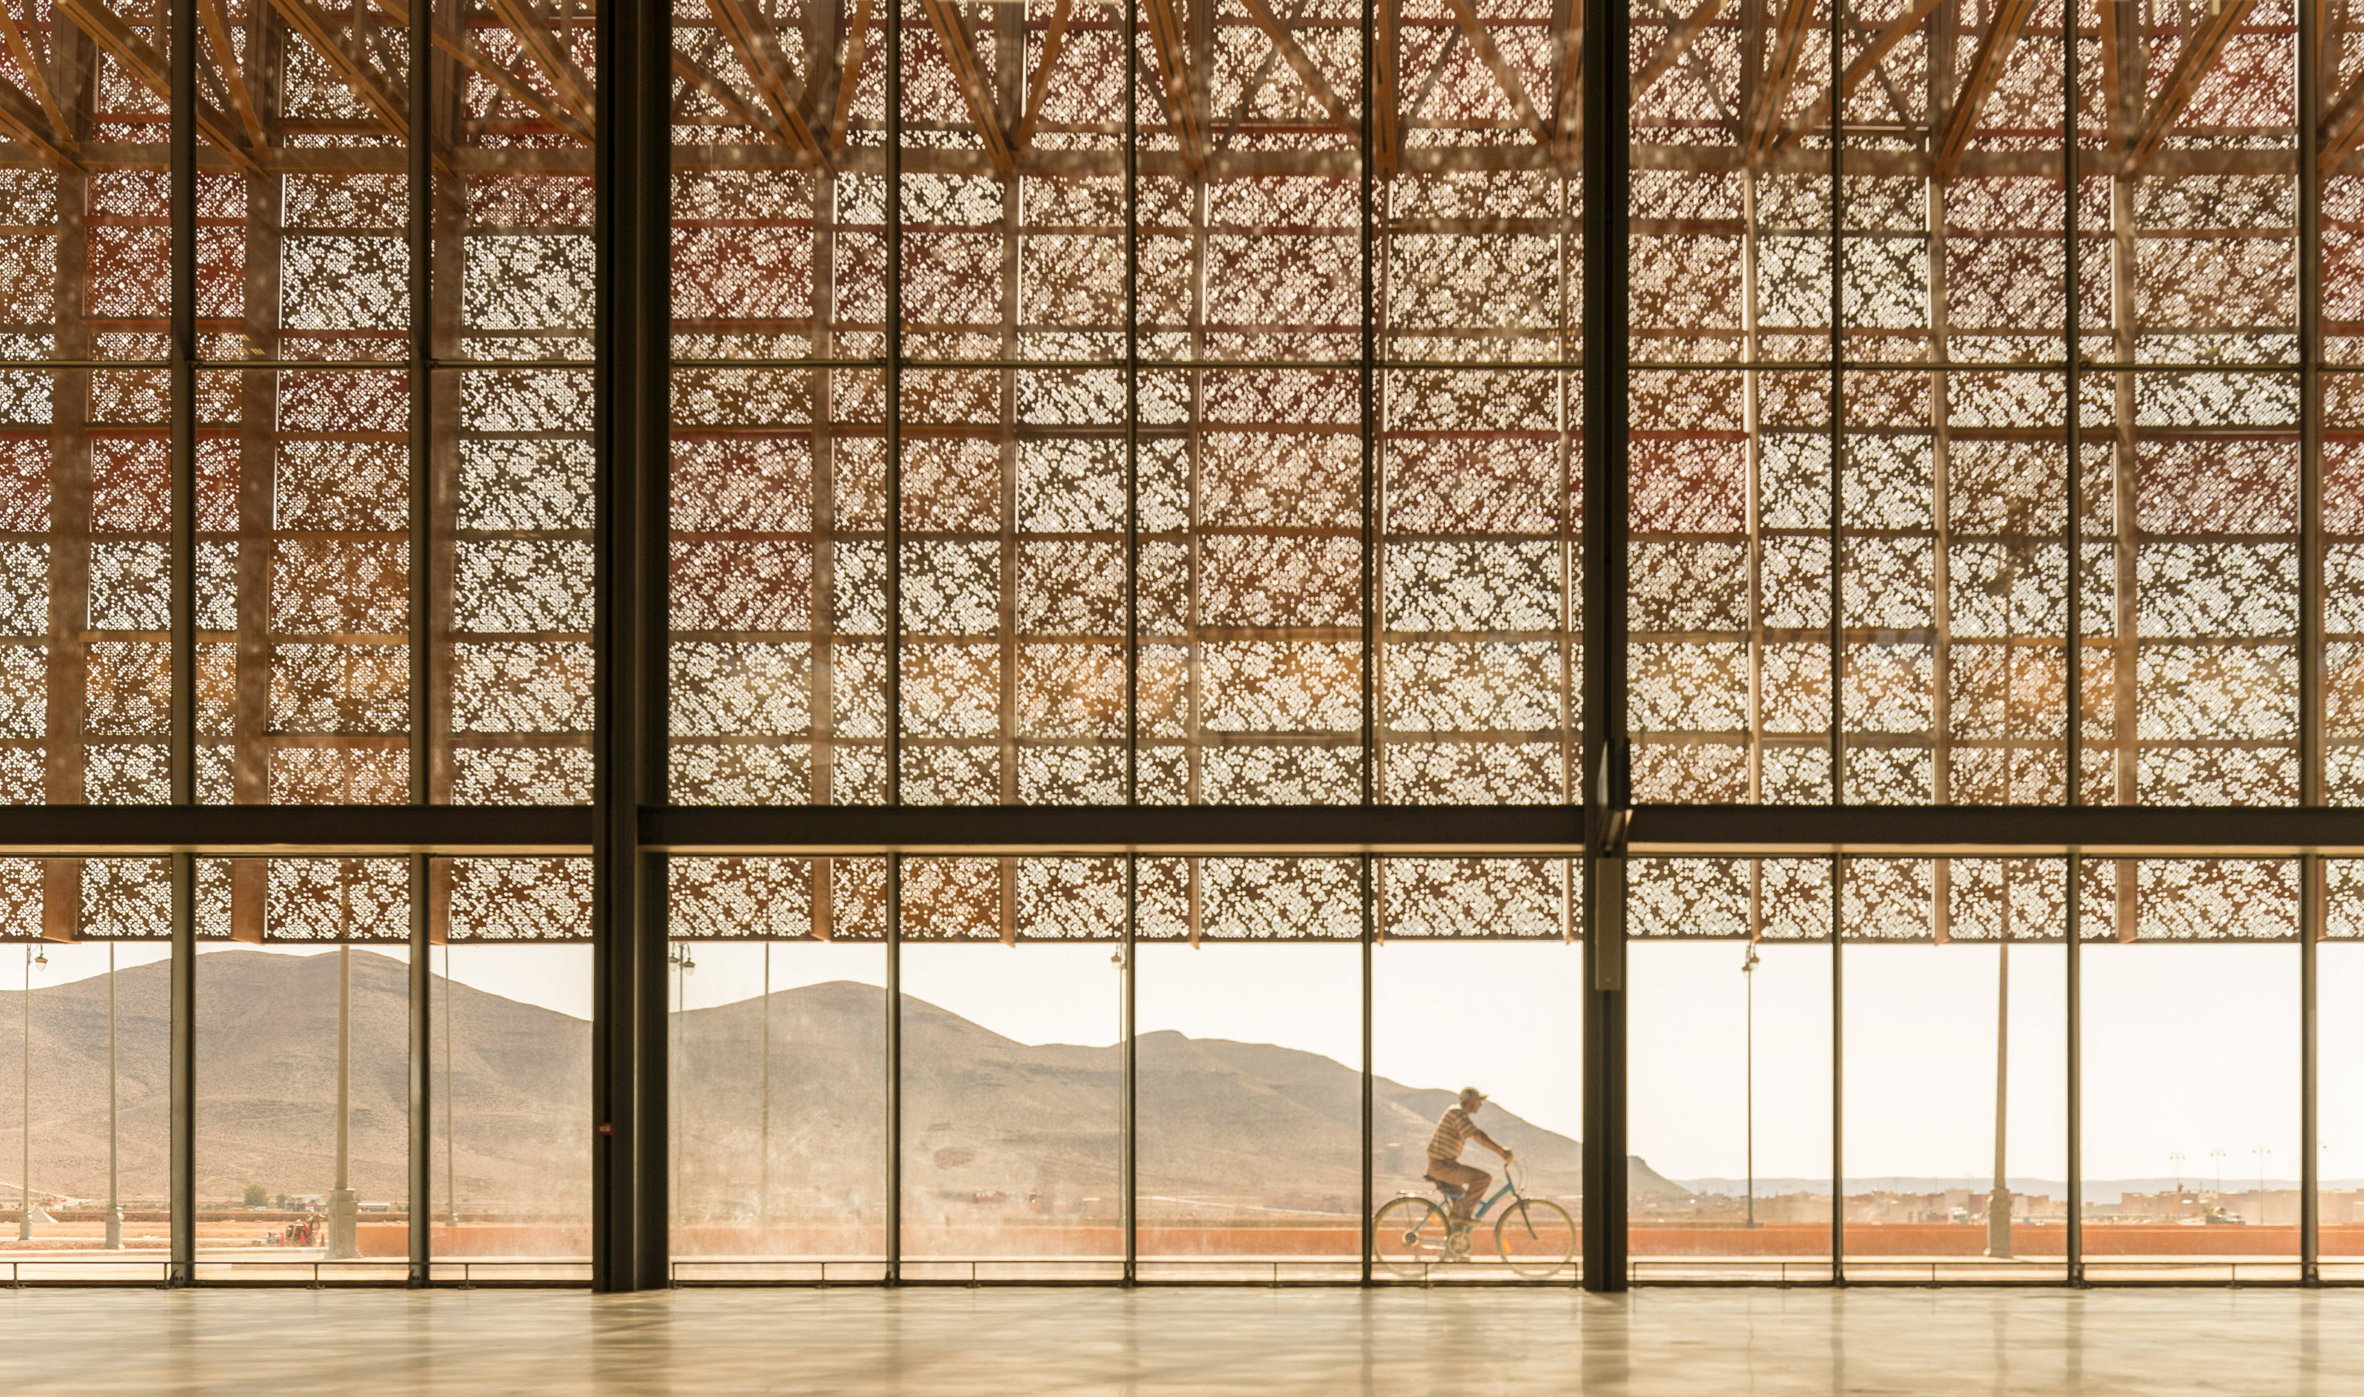 Guelmim Airport is wrapped in a skin of multihued perforated panels